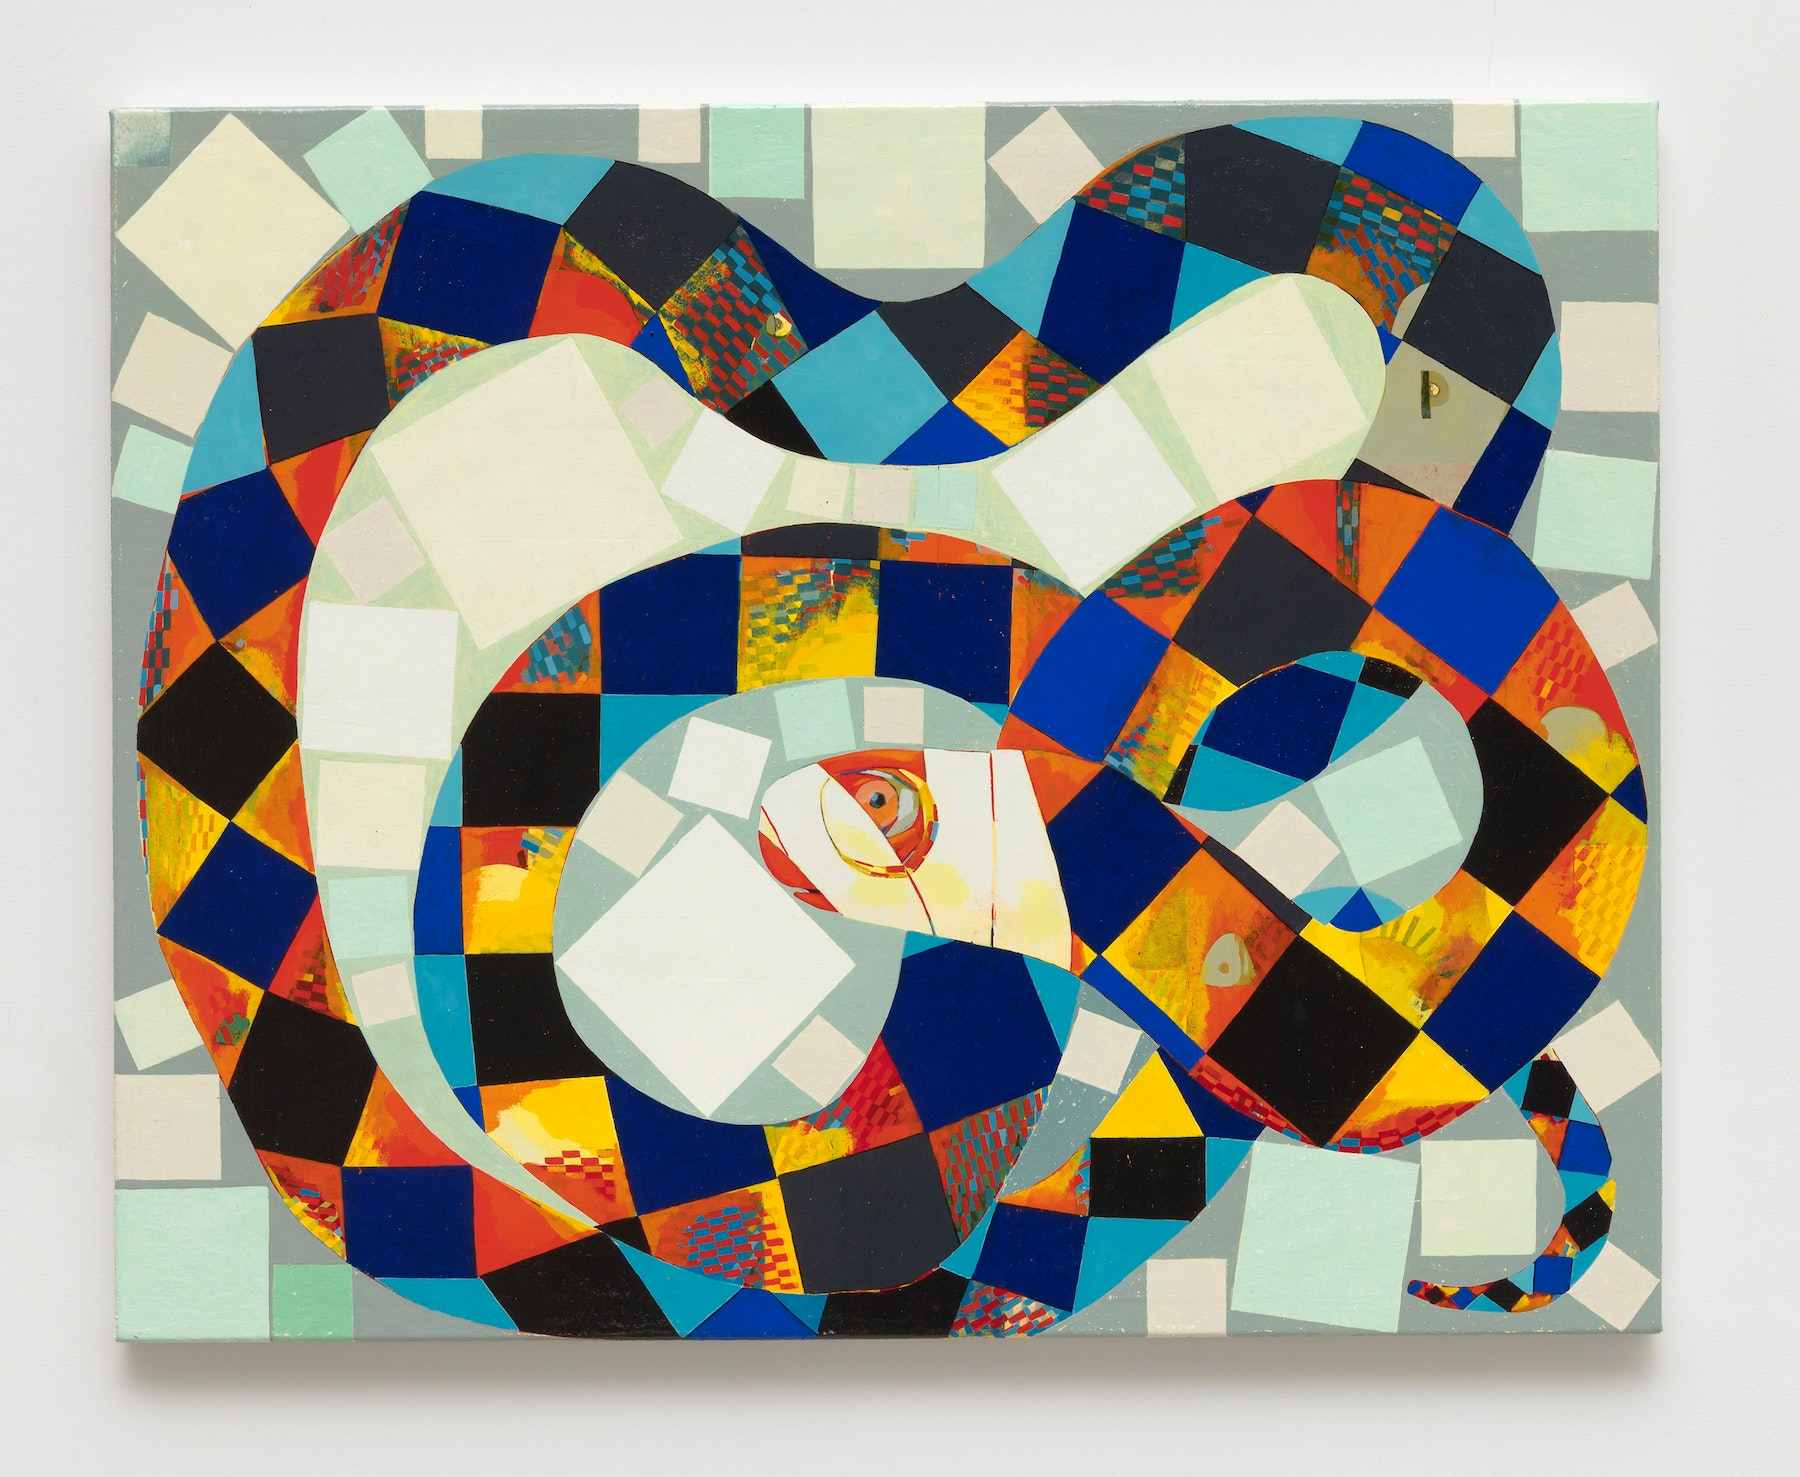 """Brad Eberhard """"Malevich's Dilemma,"""" 2020 Oil on linen 24 x 30"""" [HxW] (60.96 x 76.2 cm) Inventory #EBE162 Courtesy of the artist and Vielmetter Los Angeles Photo credit: Robert Wedemeyer"""